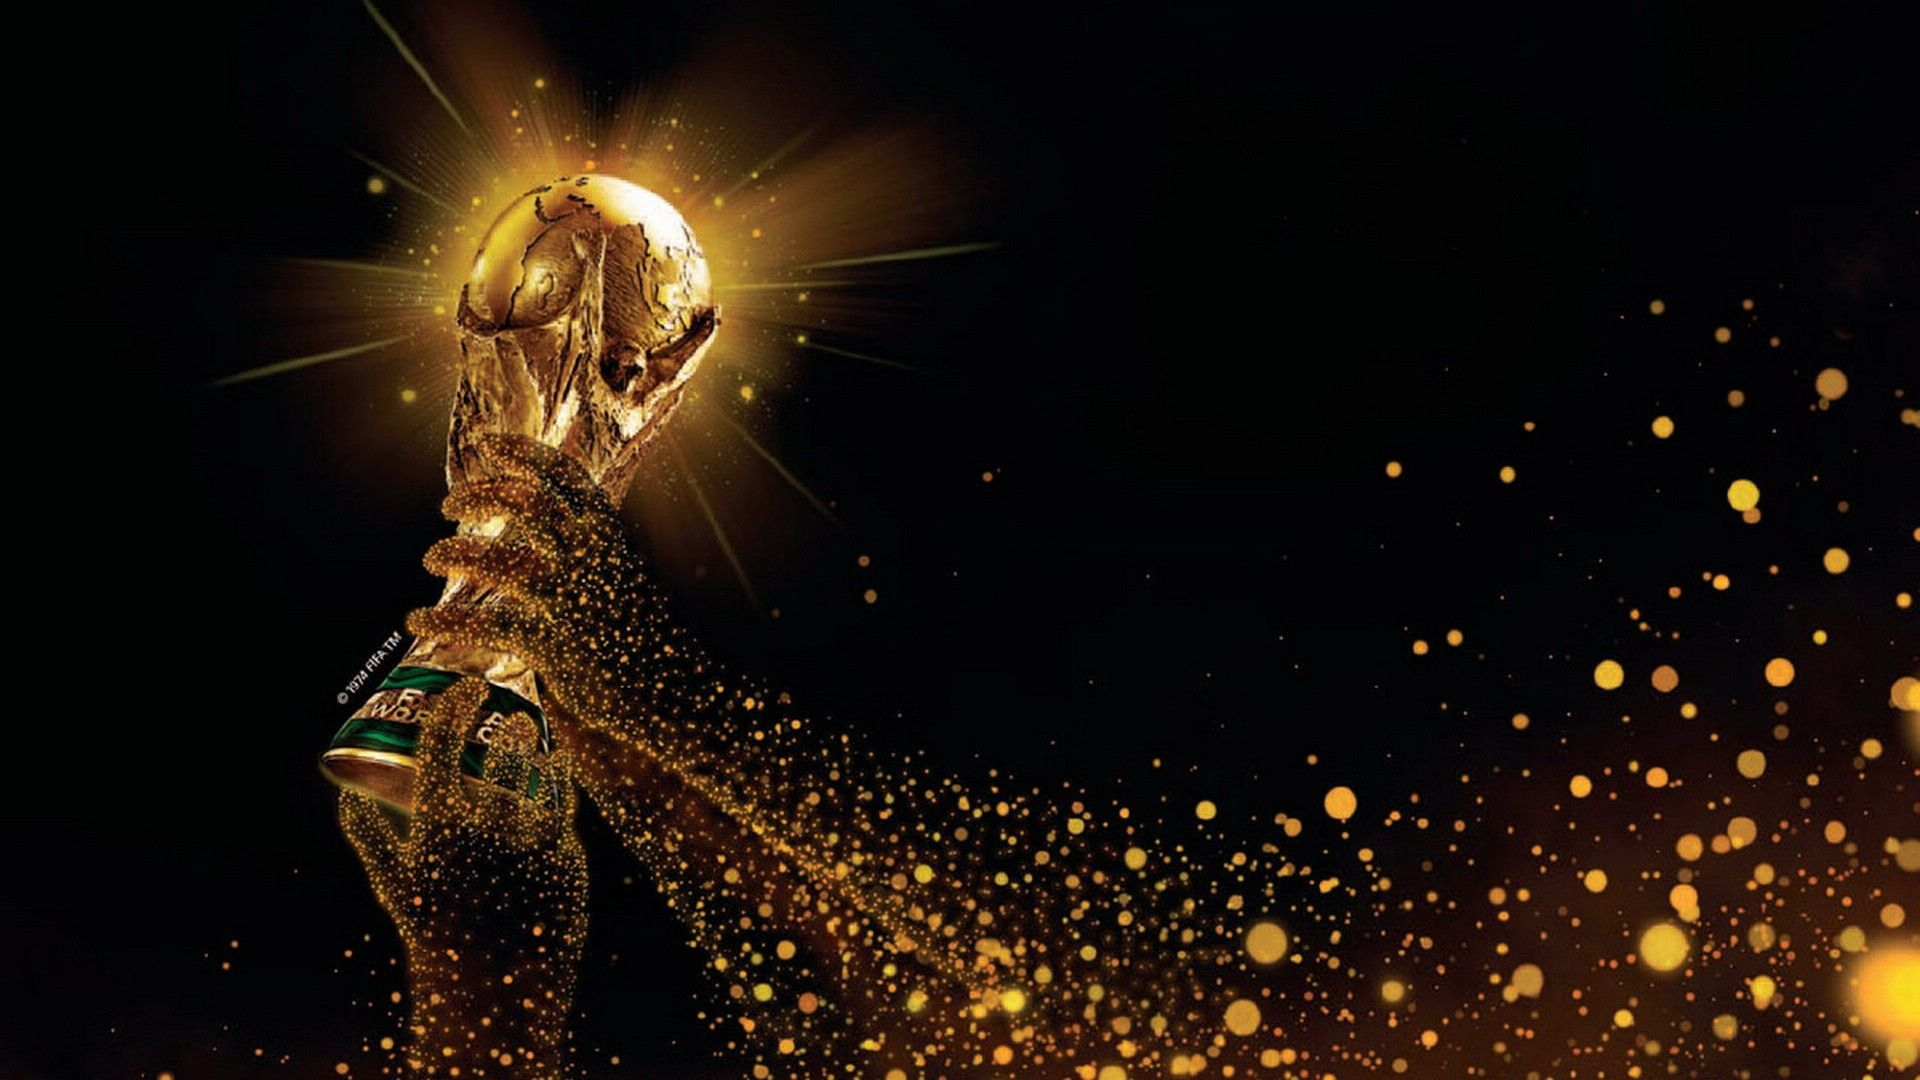 Fifa World Cup 2014 Brazil Trophy Wallpapers World Cup Trophy World Cup Match World Cup 2014